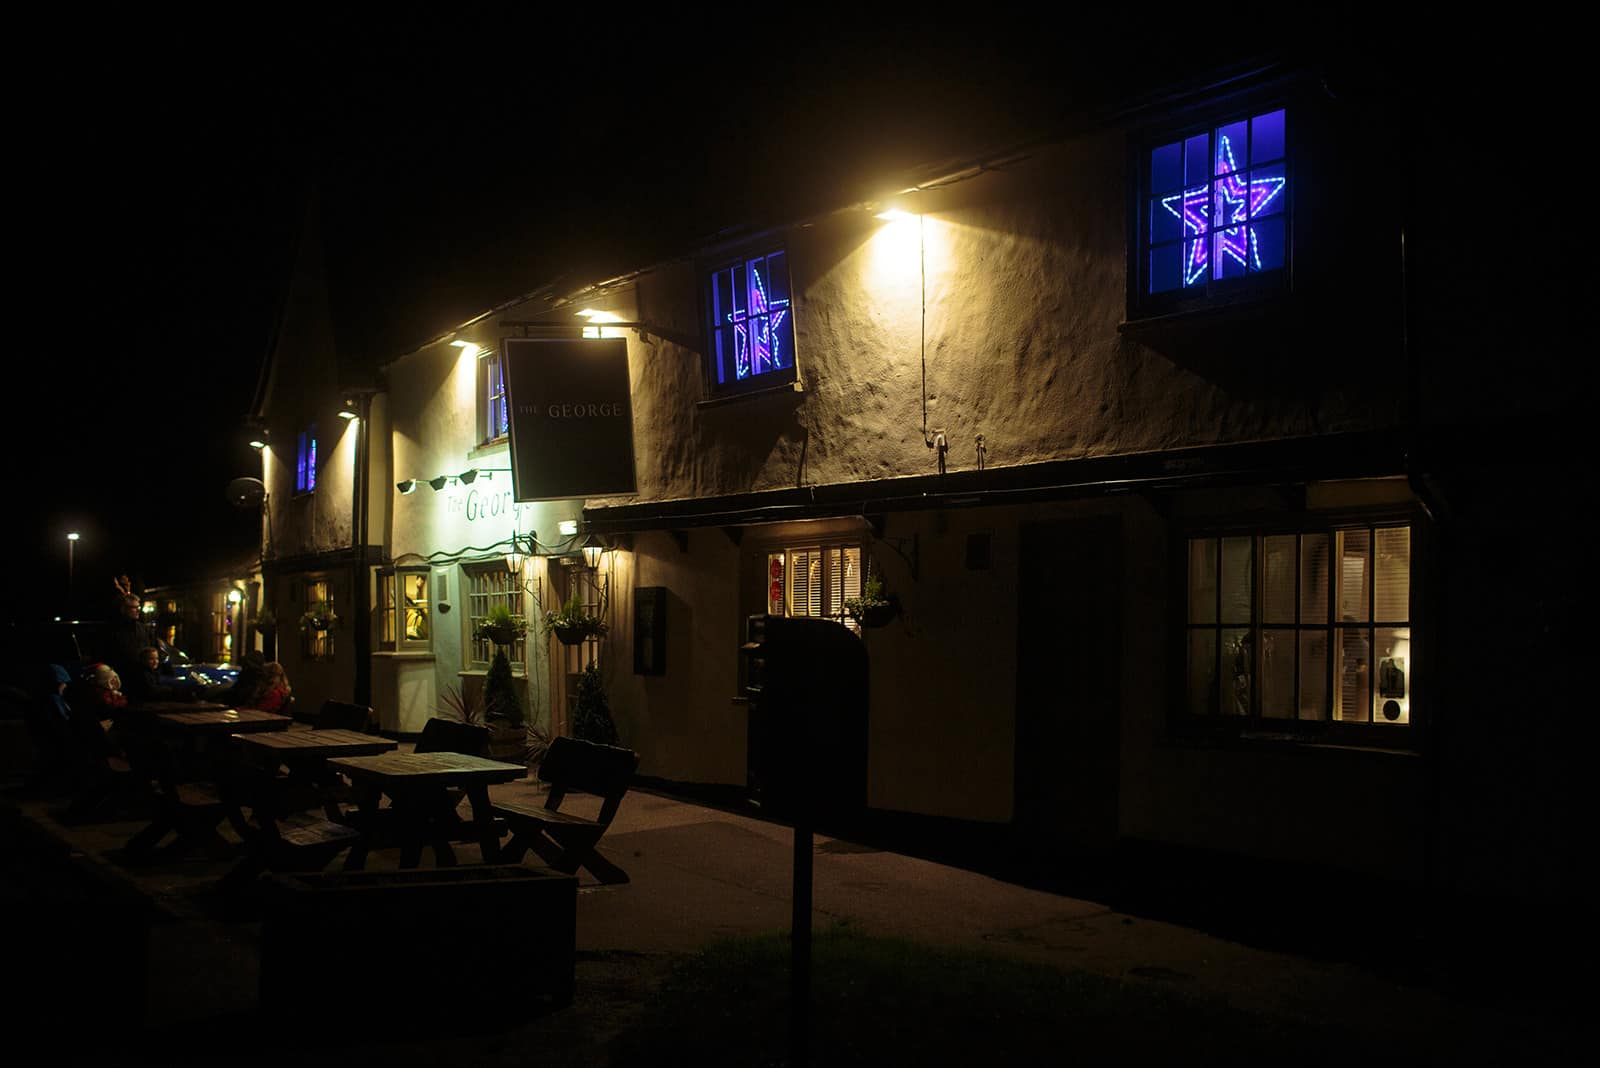 The George in Spaldwick